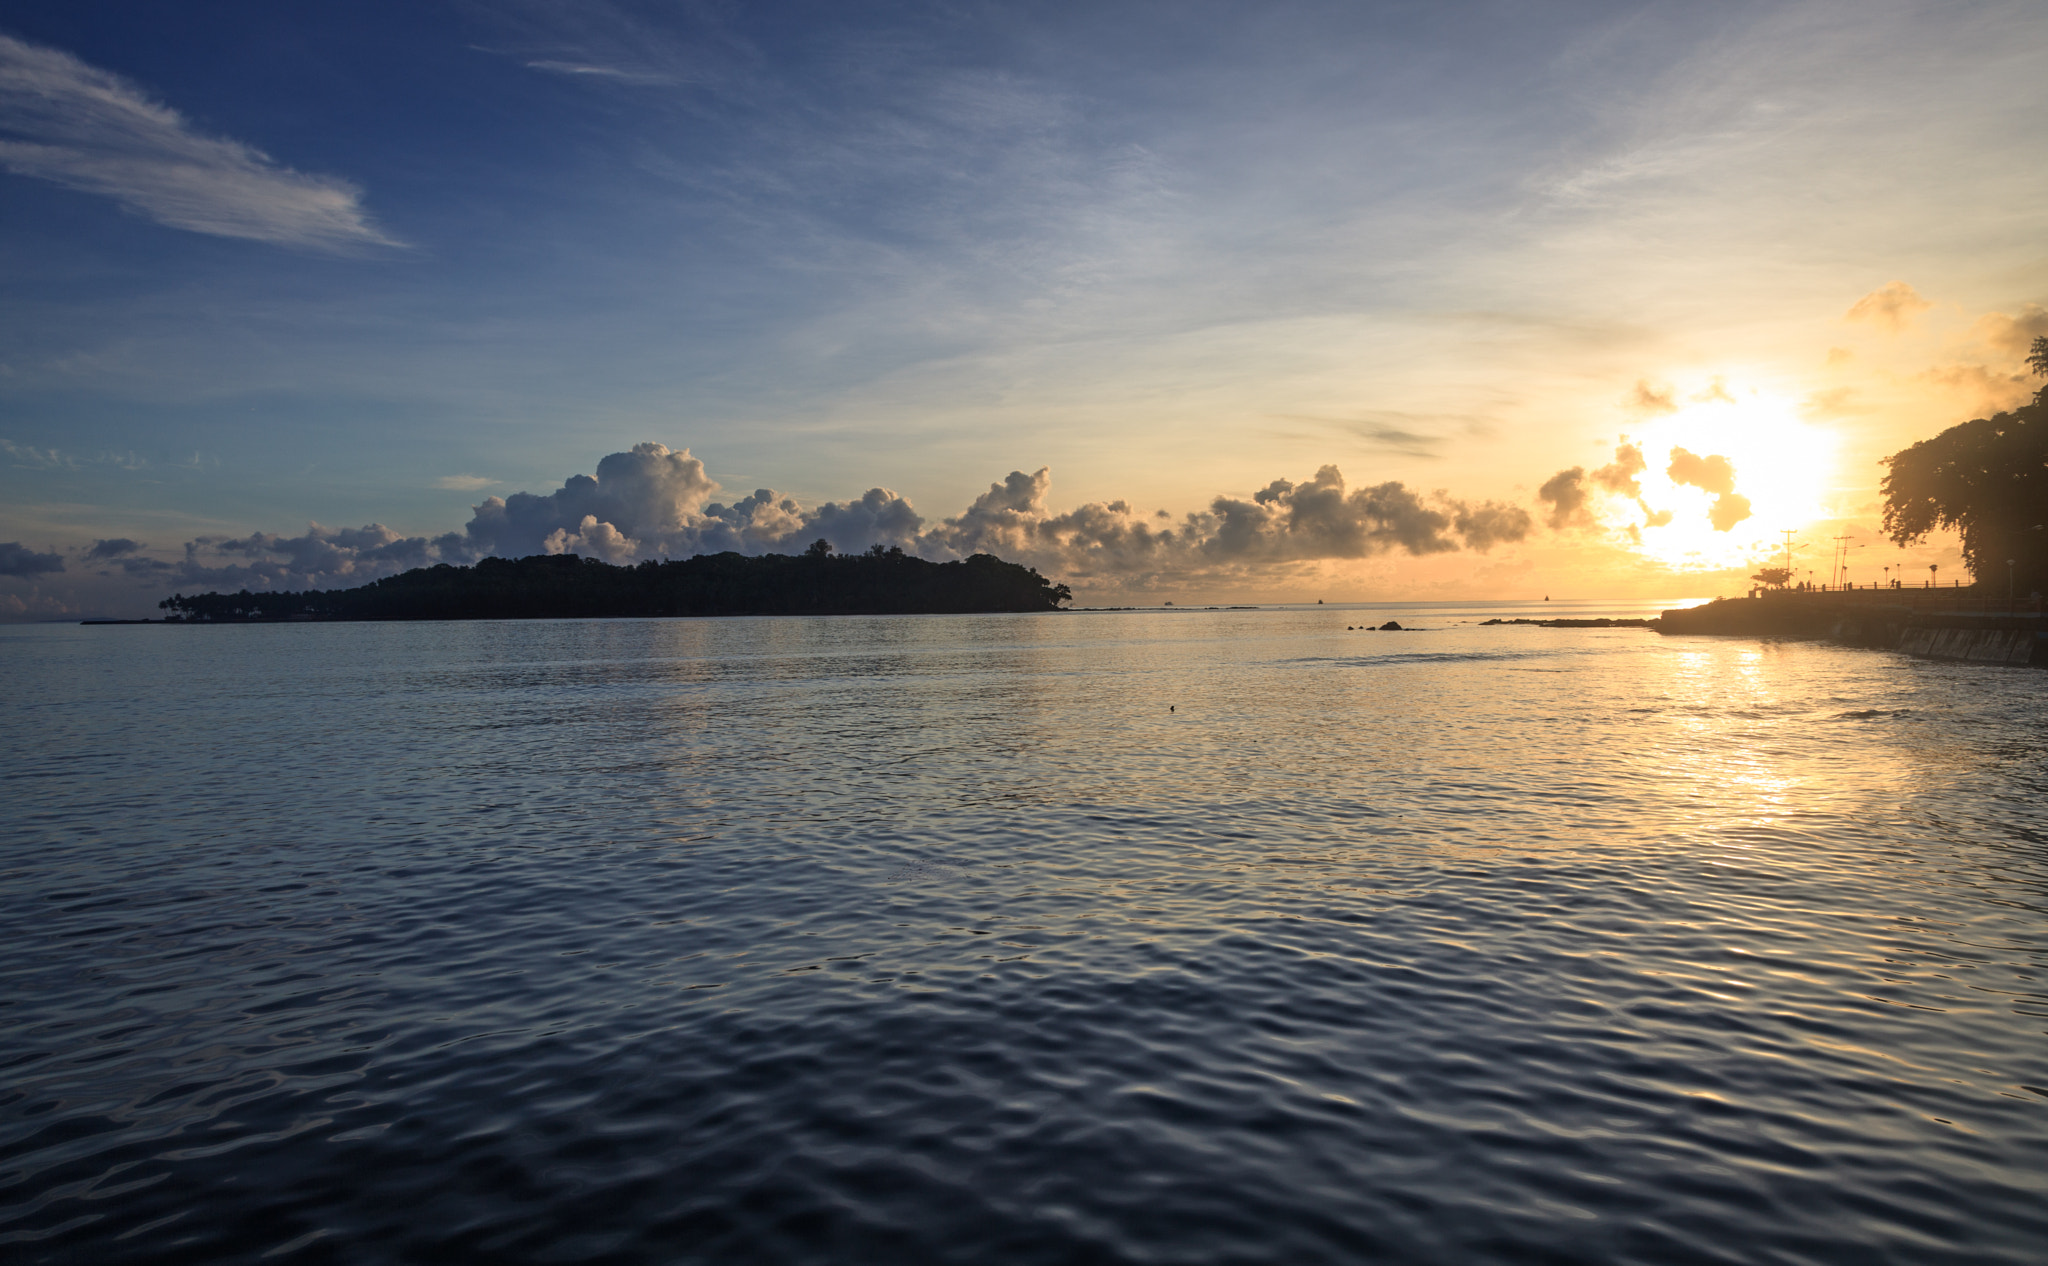 Photograph Sunrise at Portblair by S A  I on 500px